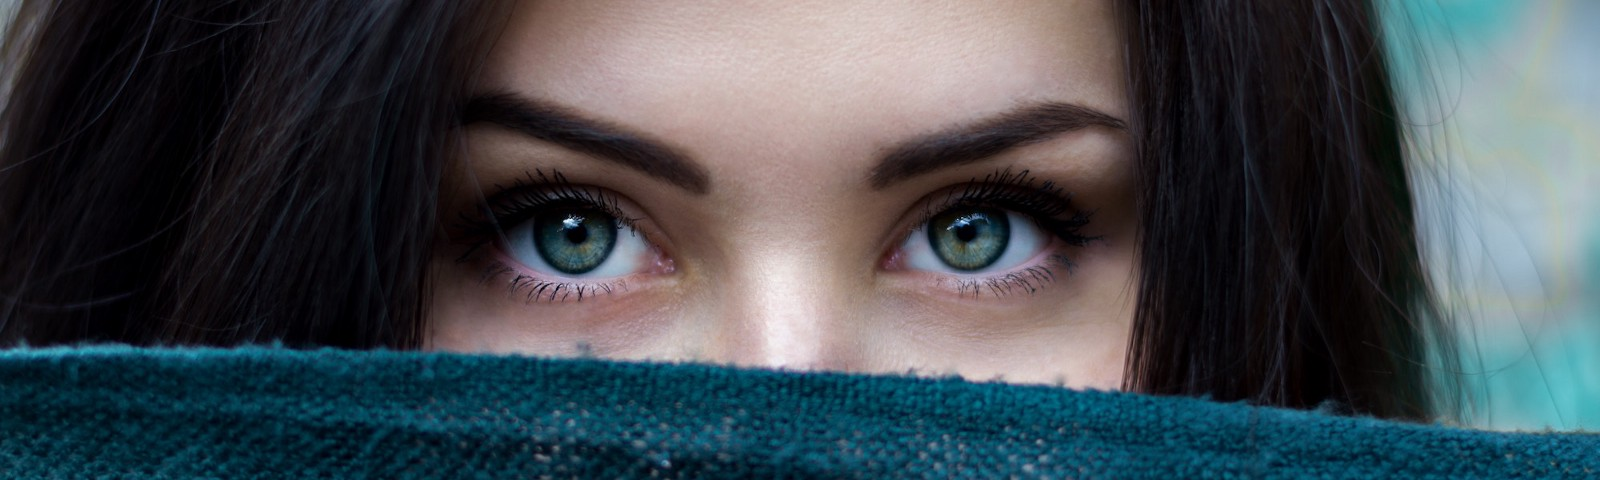 woman looking over a scarf in front of her face